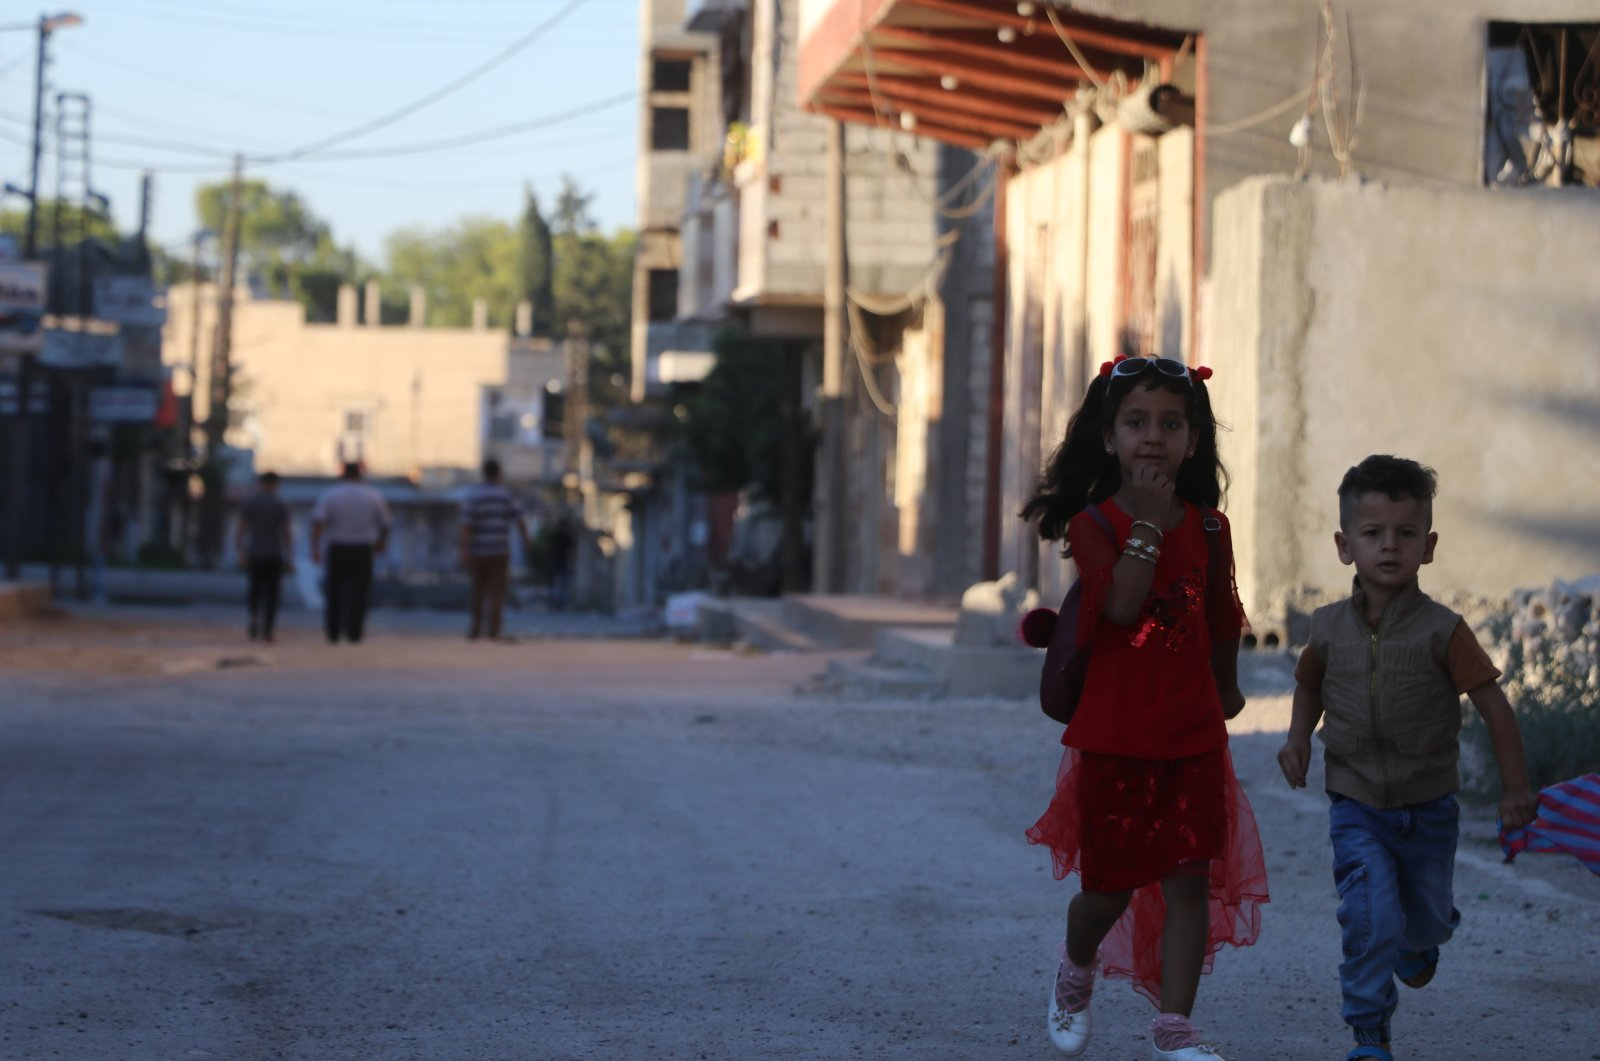 In this file photo, children run in a street in an area cleared of terrorists in Turkey's Operation Peace Spring in northern Syria, July 31, 2020. (AA Photo)